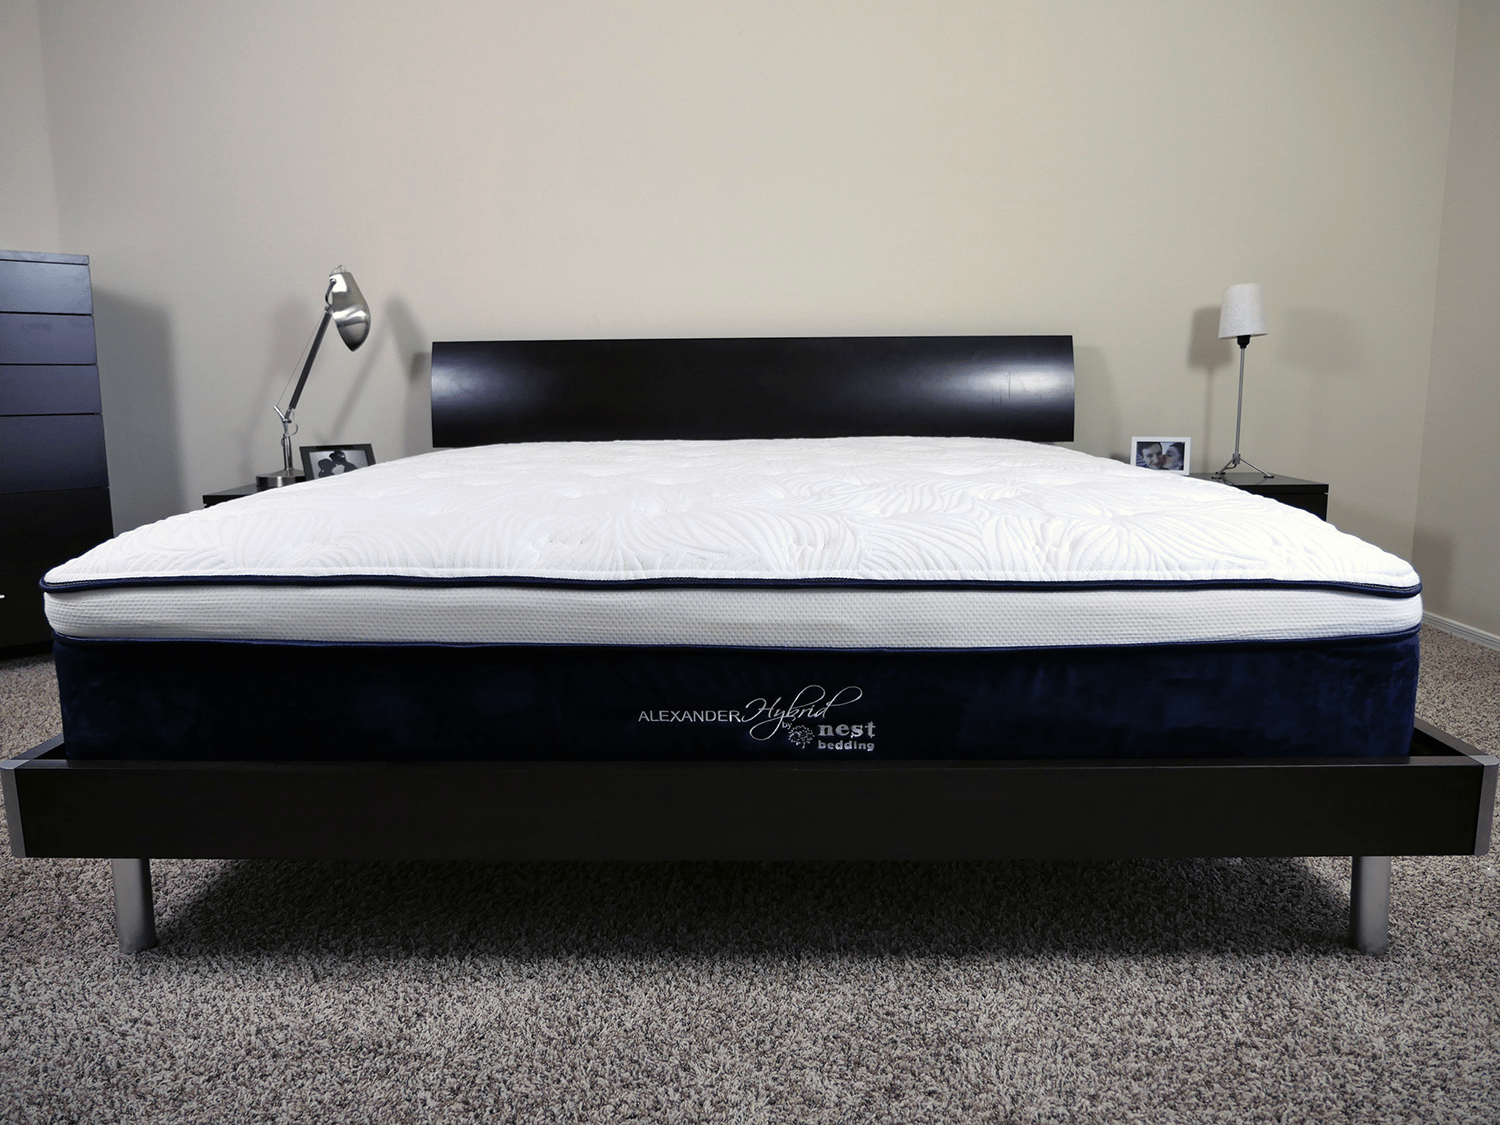 Nets Bedding Alexander Hybrid Mattress Review